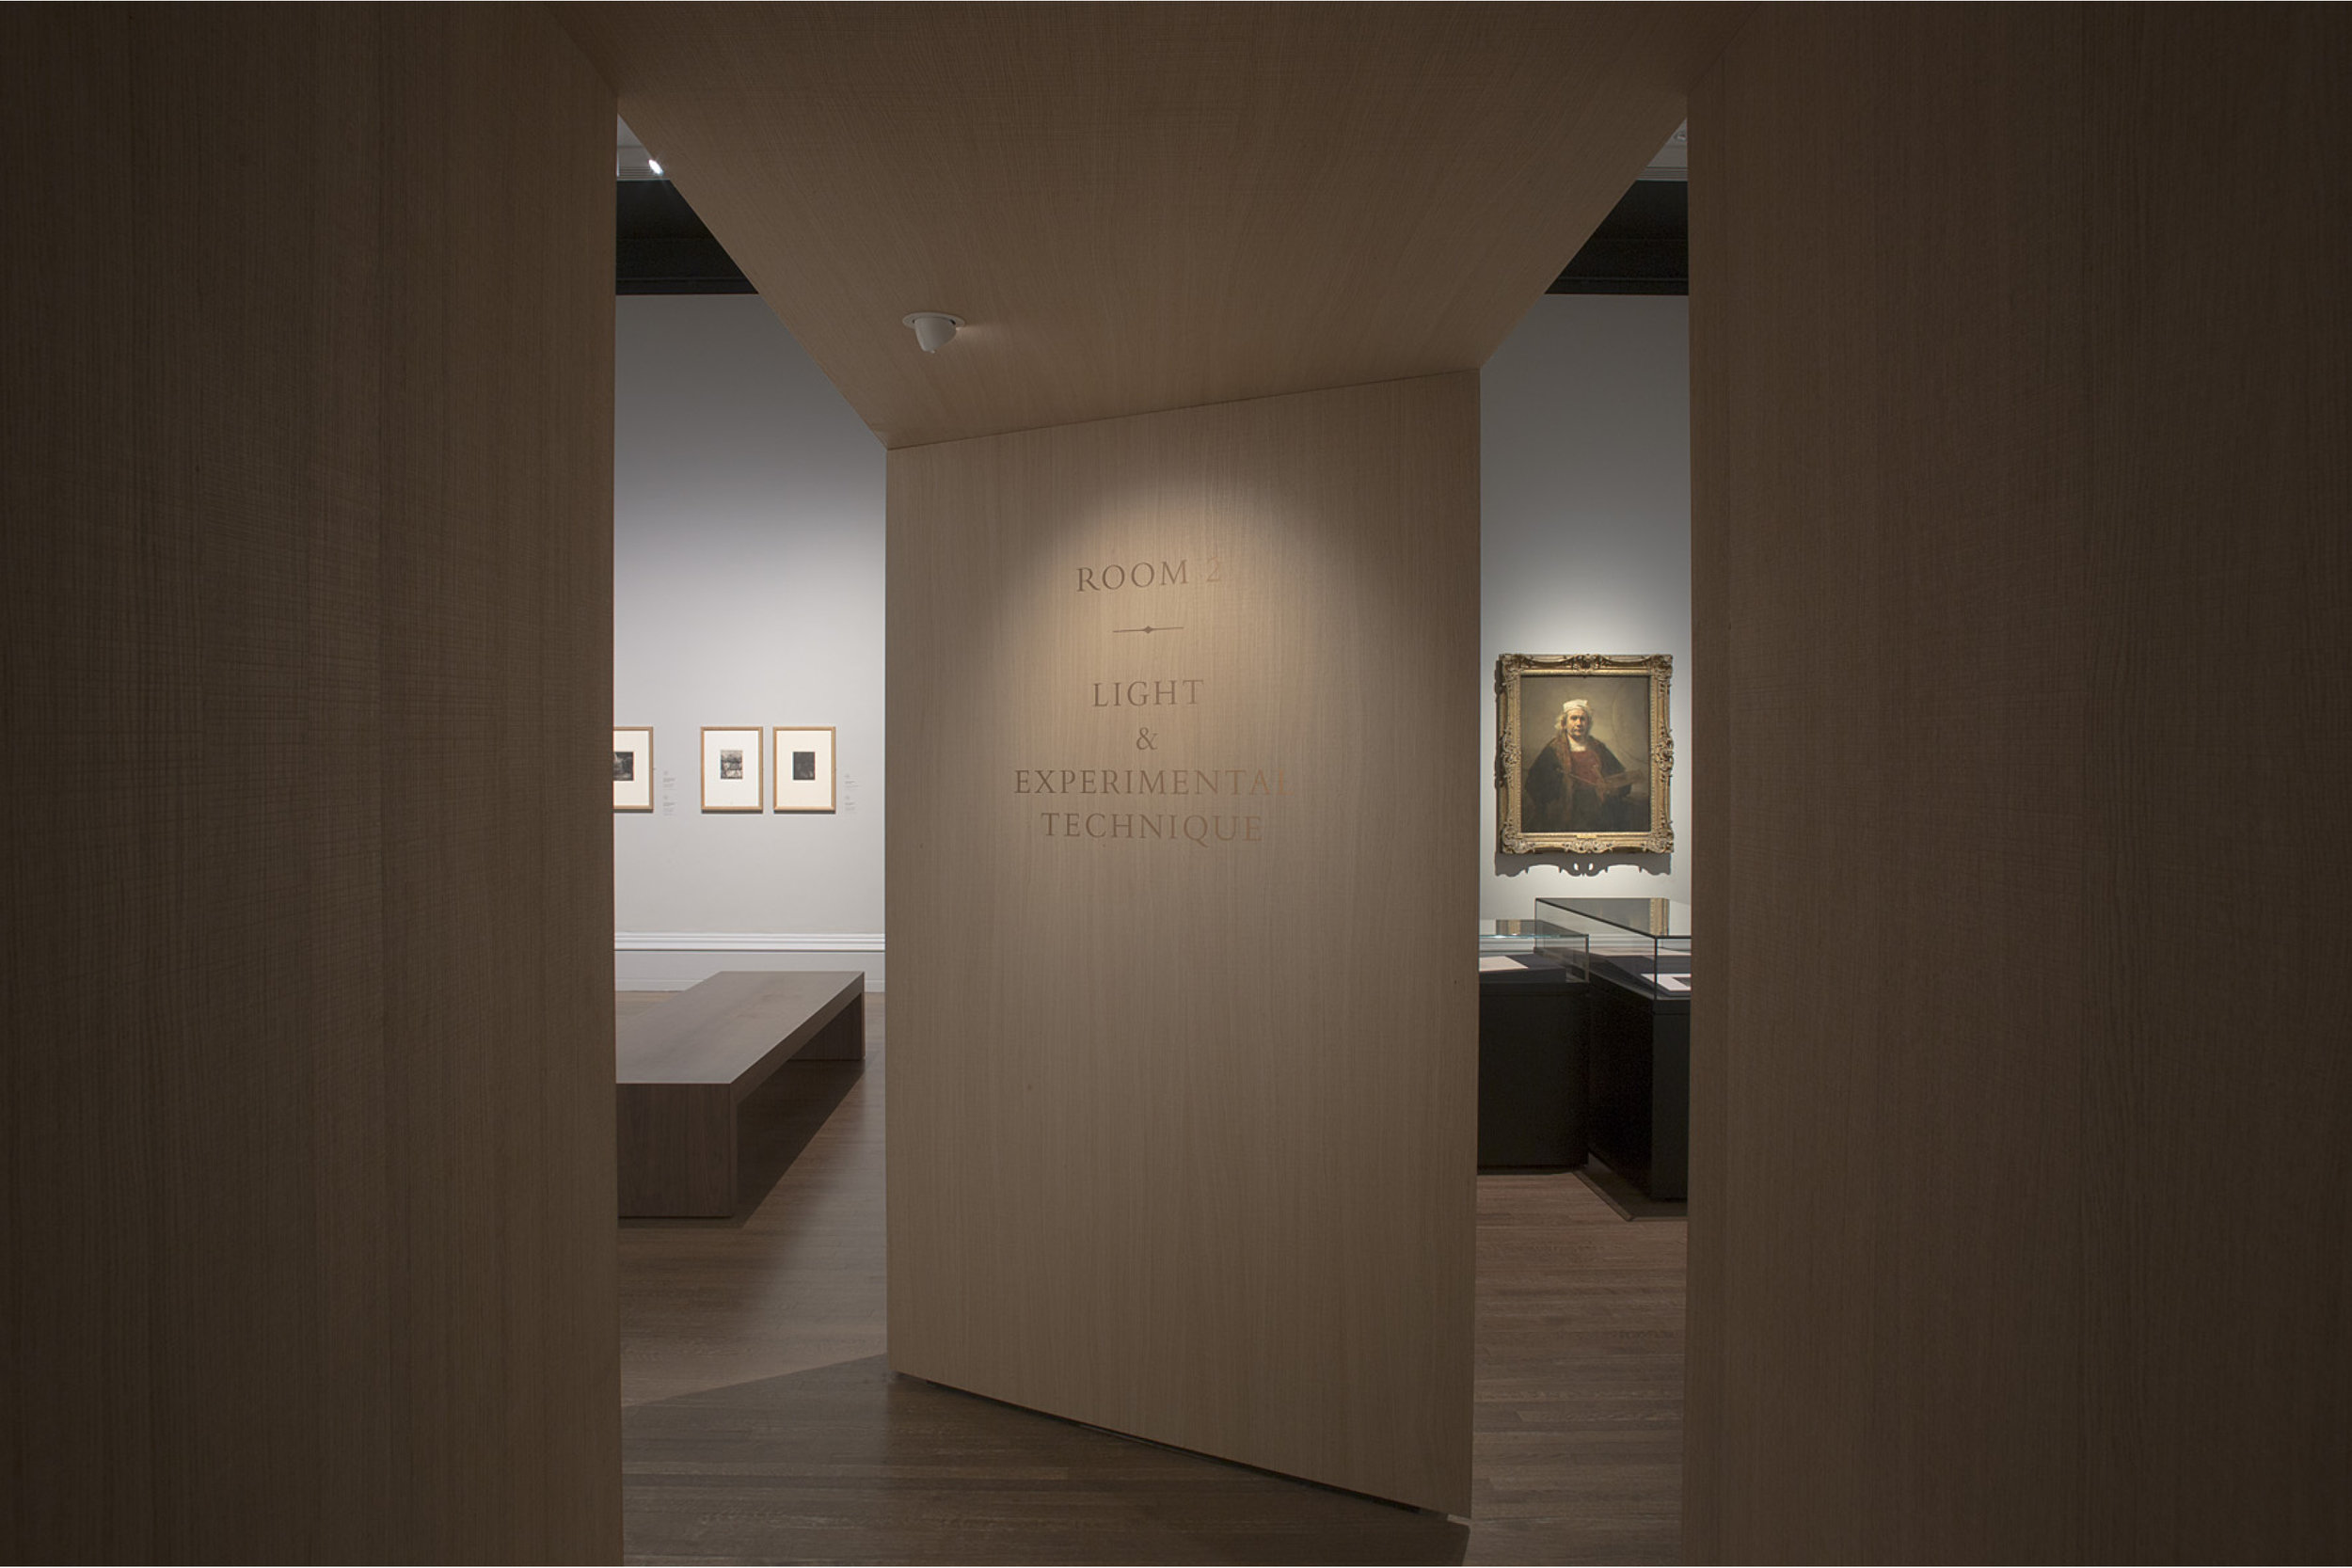 Photograph of Exhibition Design at the National Gallery in London